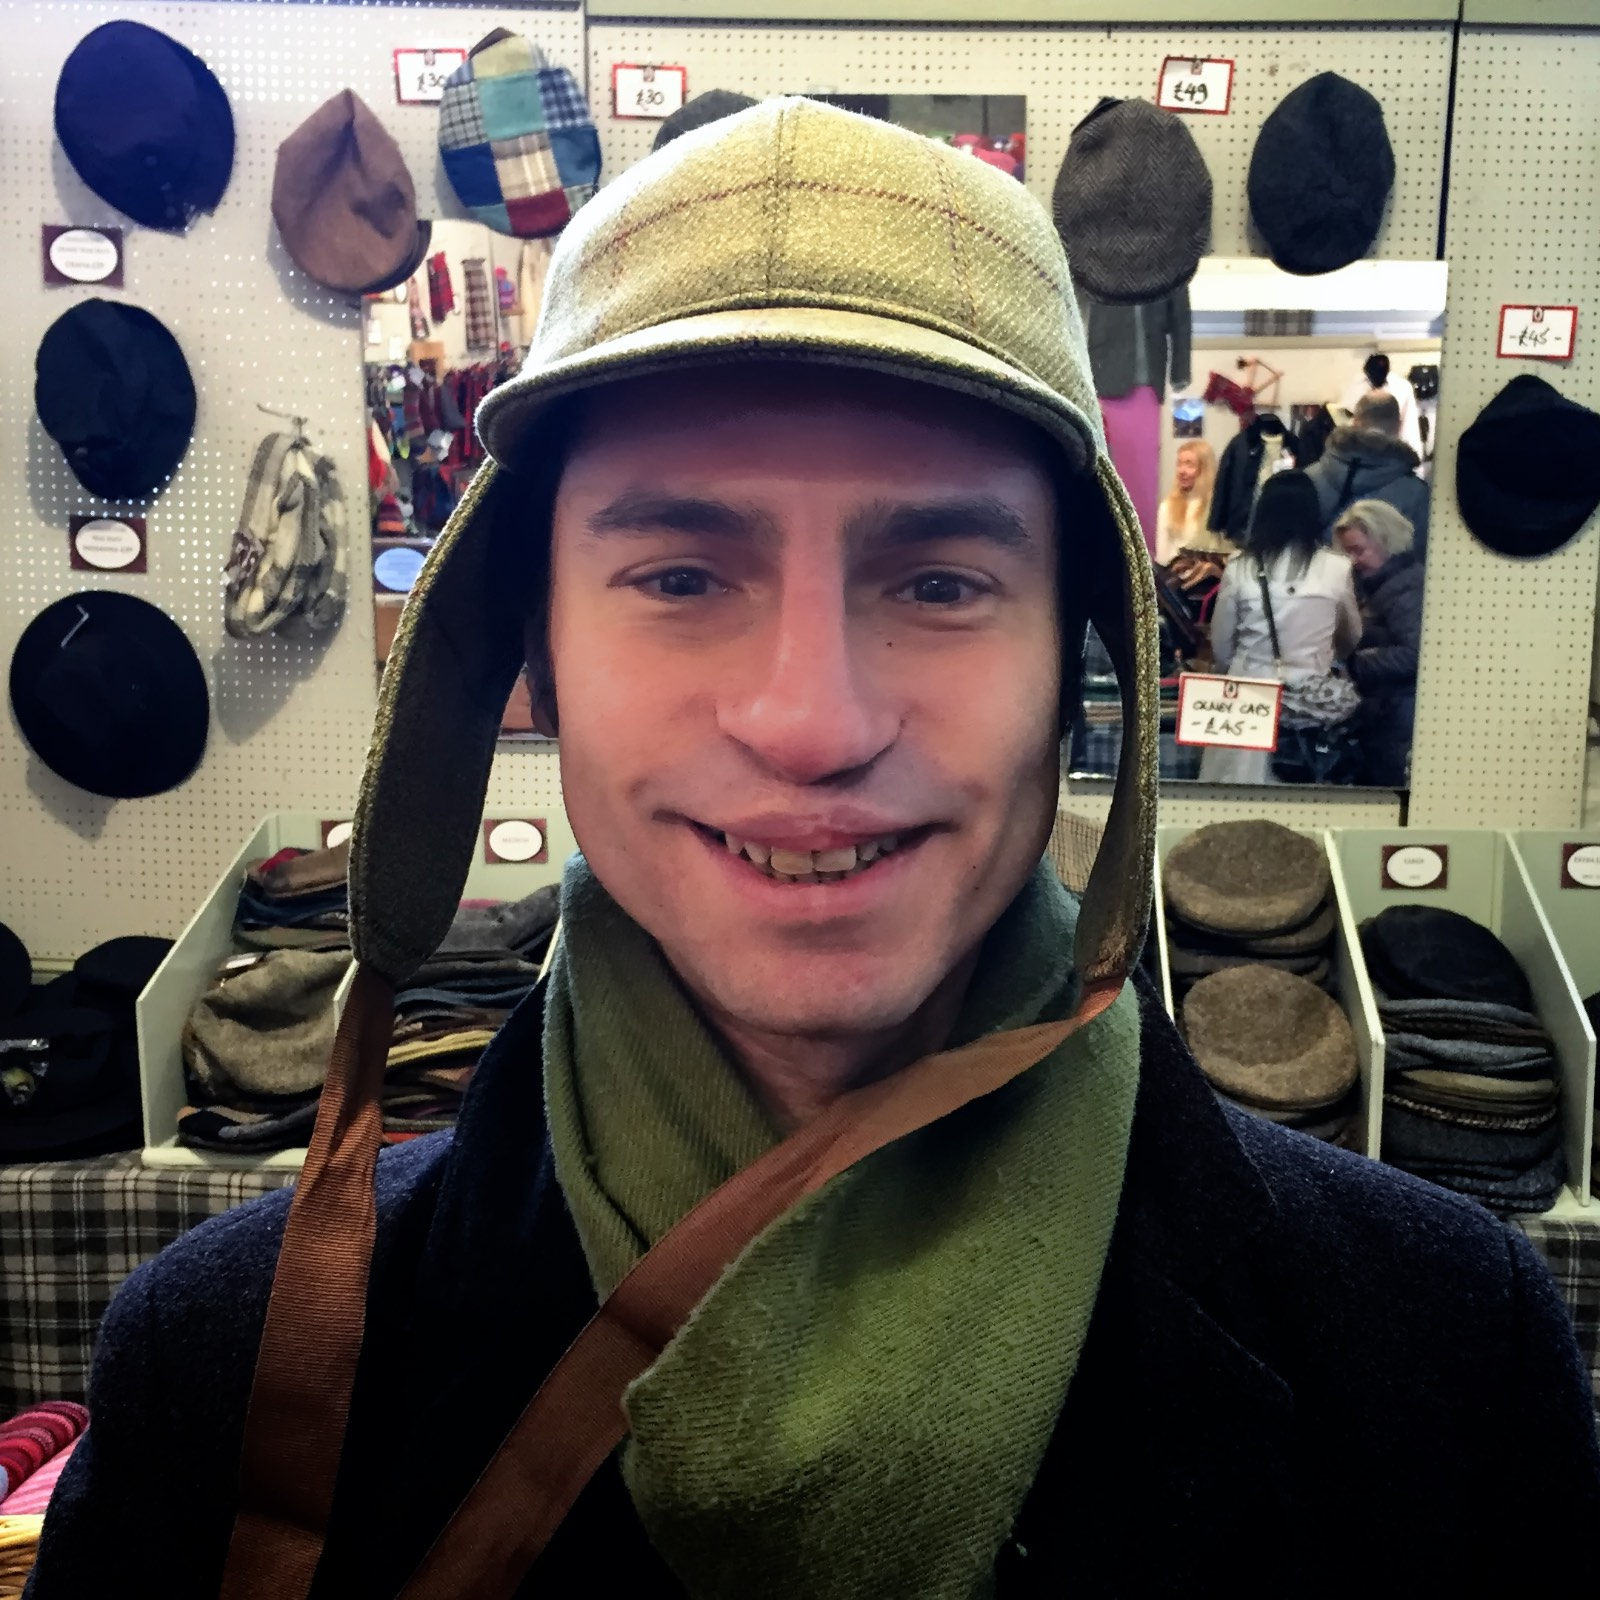 And he was seriously considering buying a deer stalker hat, just like Sherlock. I kinda wish he did. Dorky! Cute! Dorky!